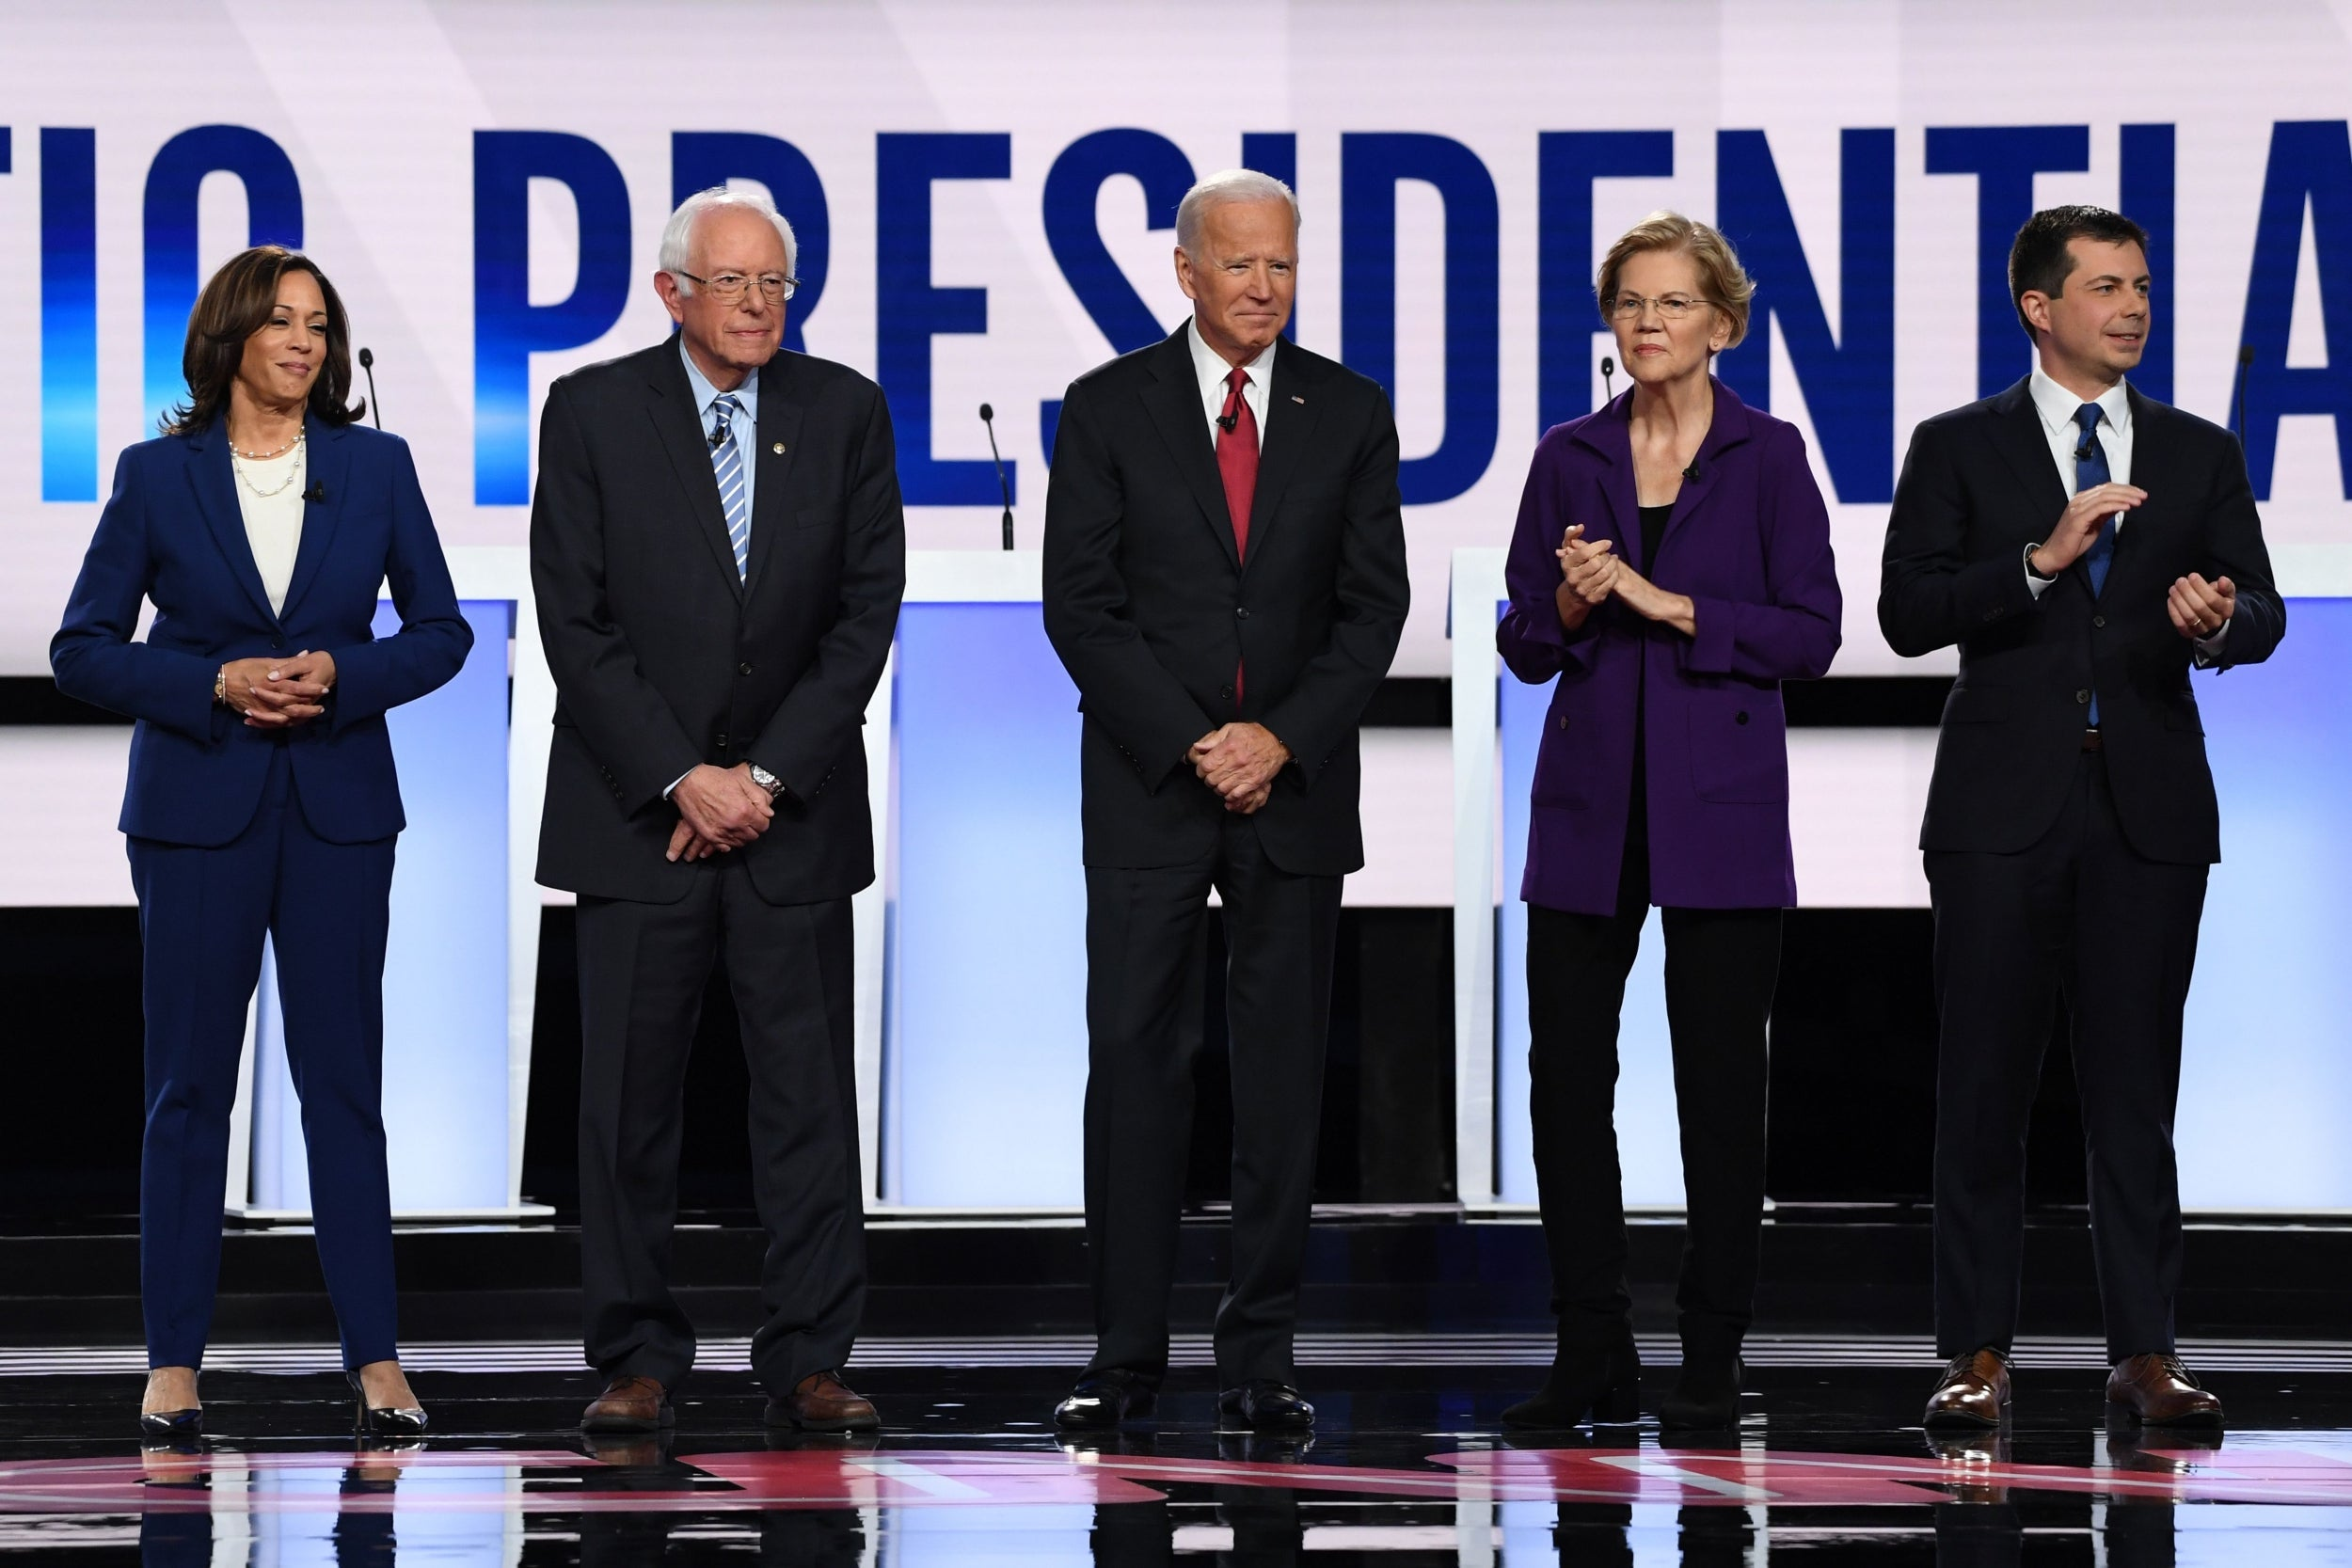 Democratic debate: Who won and who lost the latest 2020 election showdown?